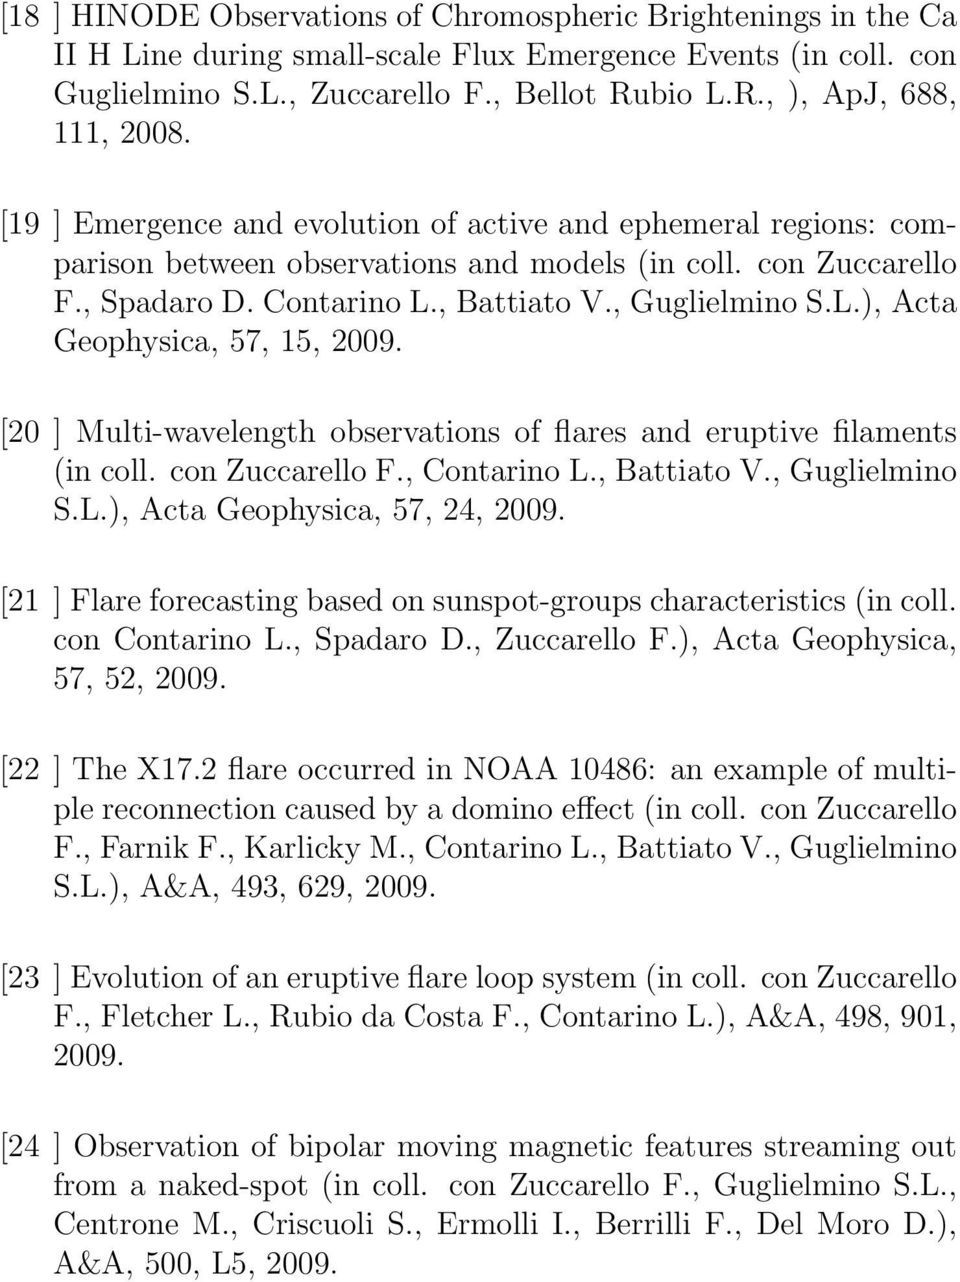 [20 ] Multi-wavelength observations of flares and eruptive filaments (in coll. con Zuccarello F., Contarino L., Battiato V., Guglielmino S.L.), Acta Geophysica, 57, 24, 2009.